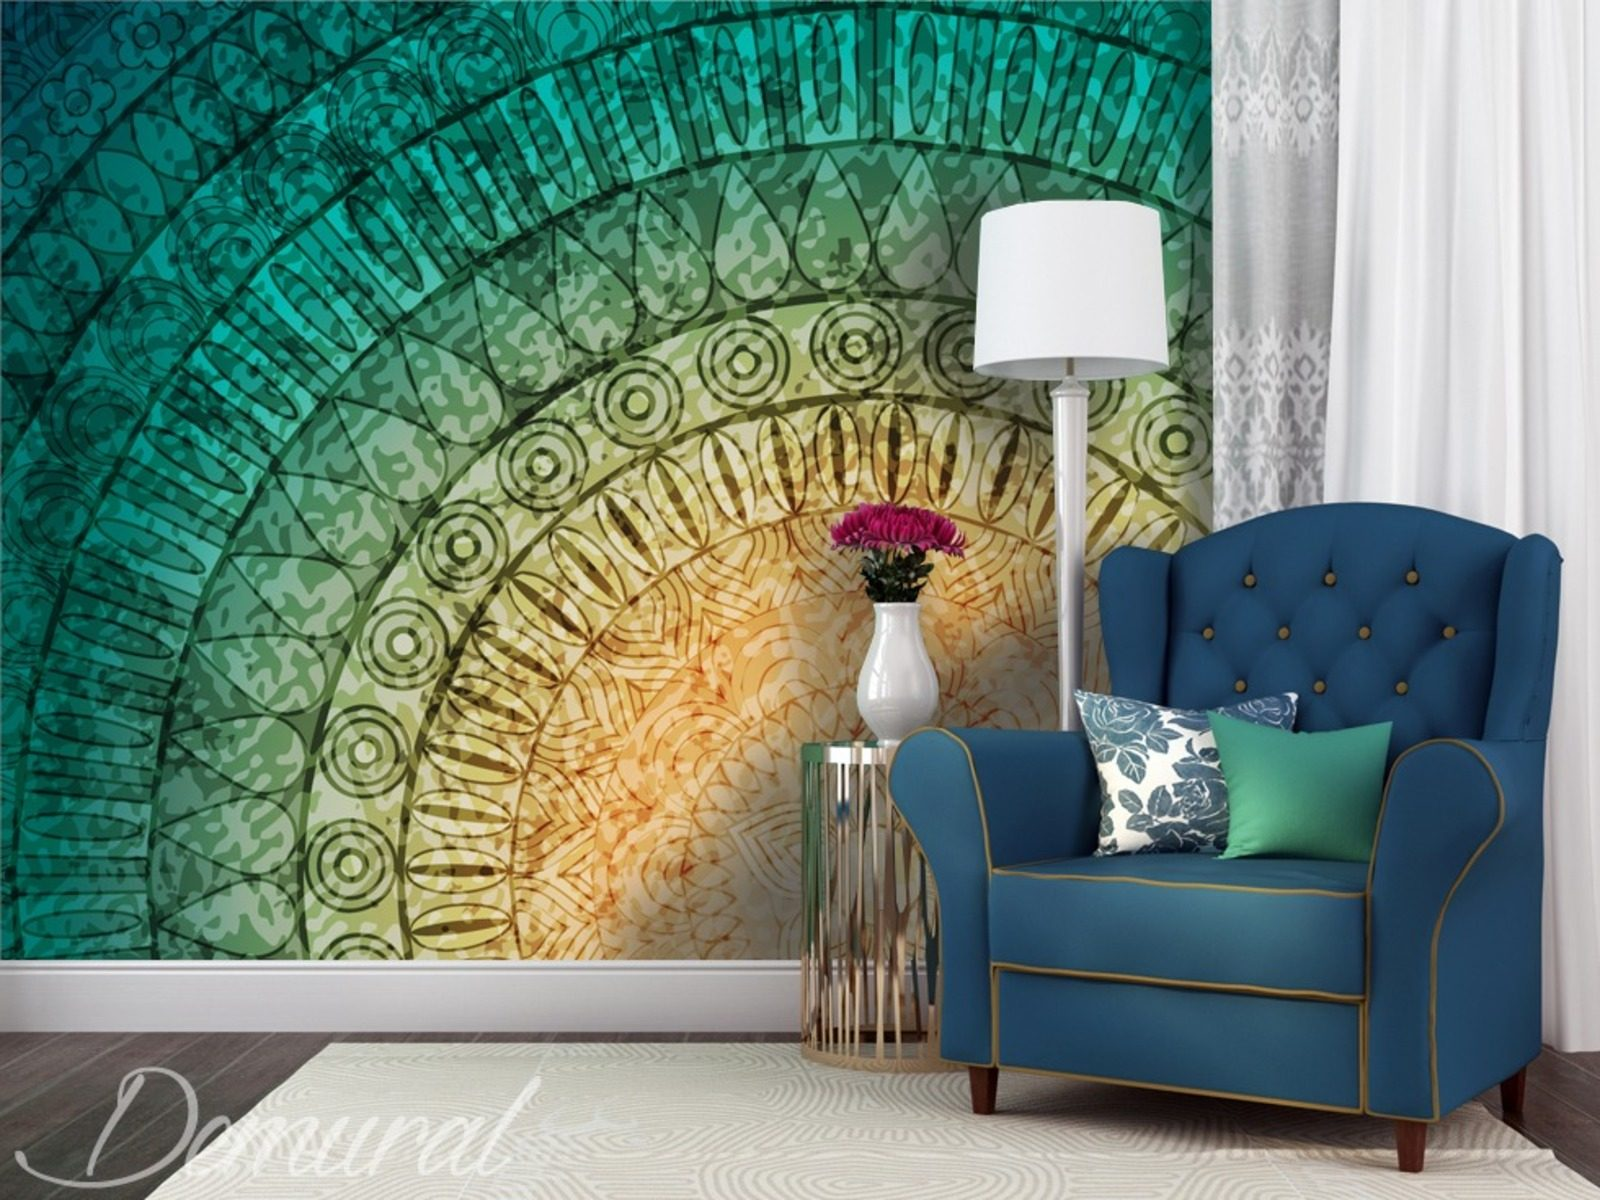 A mural mandala wall murals and photo wallpapers for Mural wallpaper